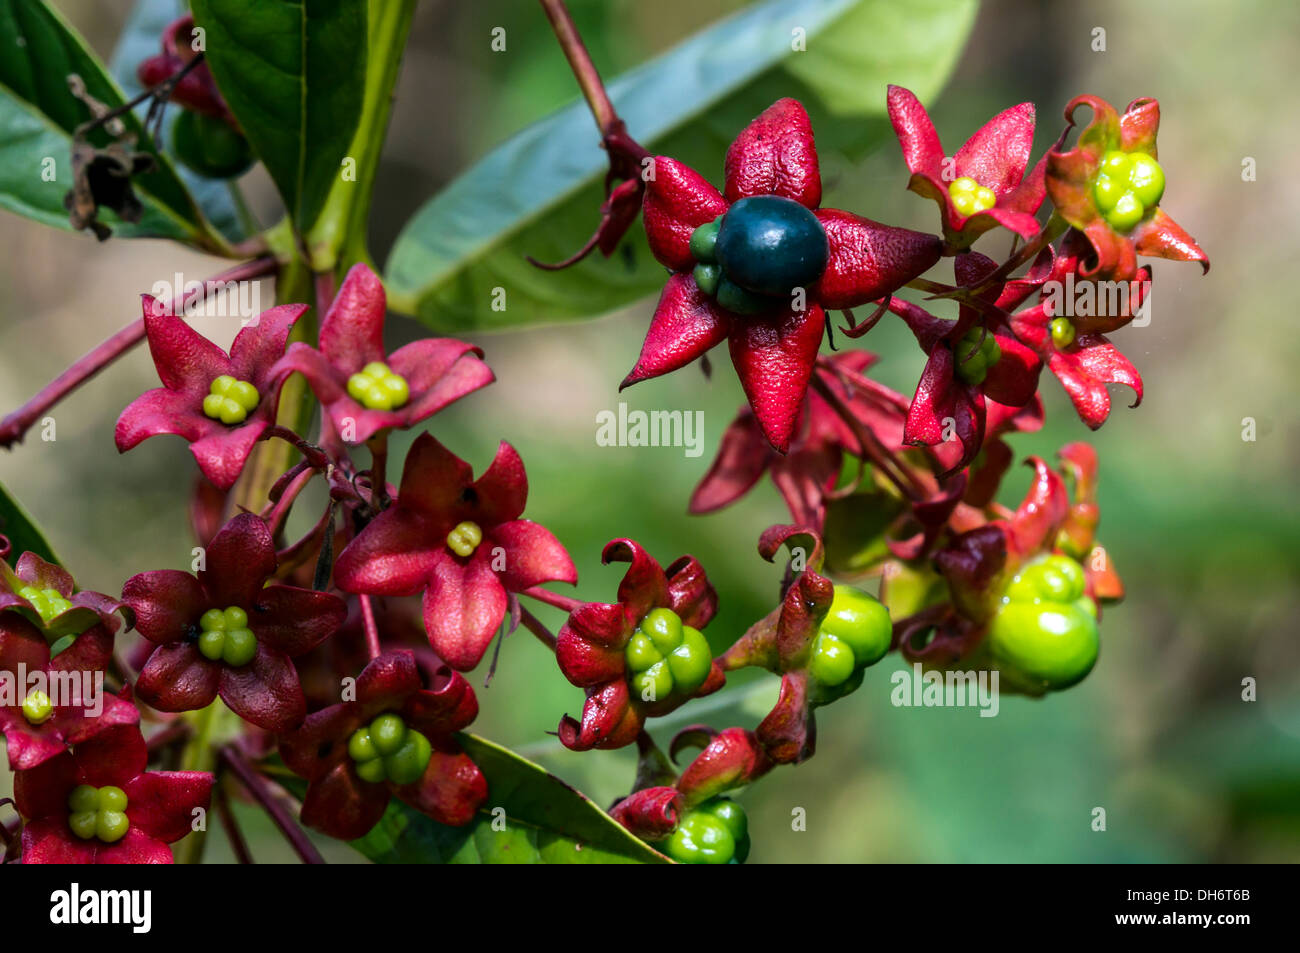 Harlequin Glory Bower (Clerodendrum trichotomum) or Peanut Butter Shrub with blue berries and red calyxes in North Florida, USA. - Stock Image